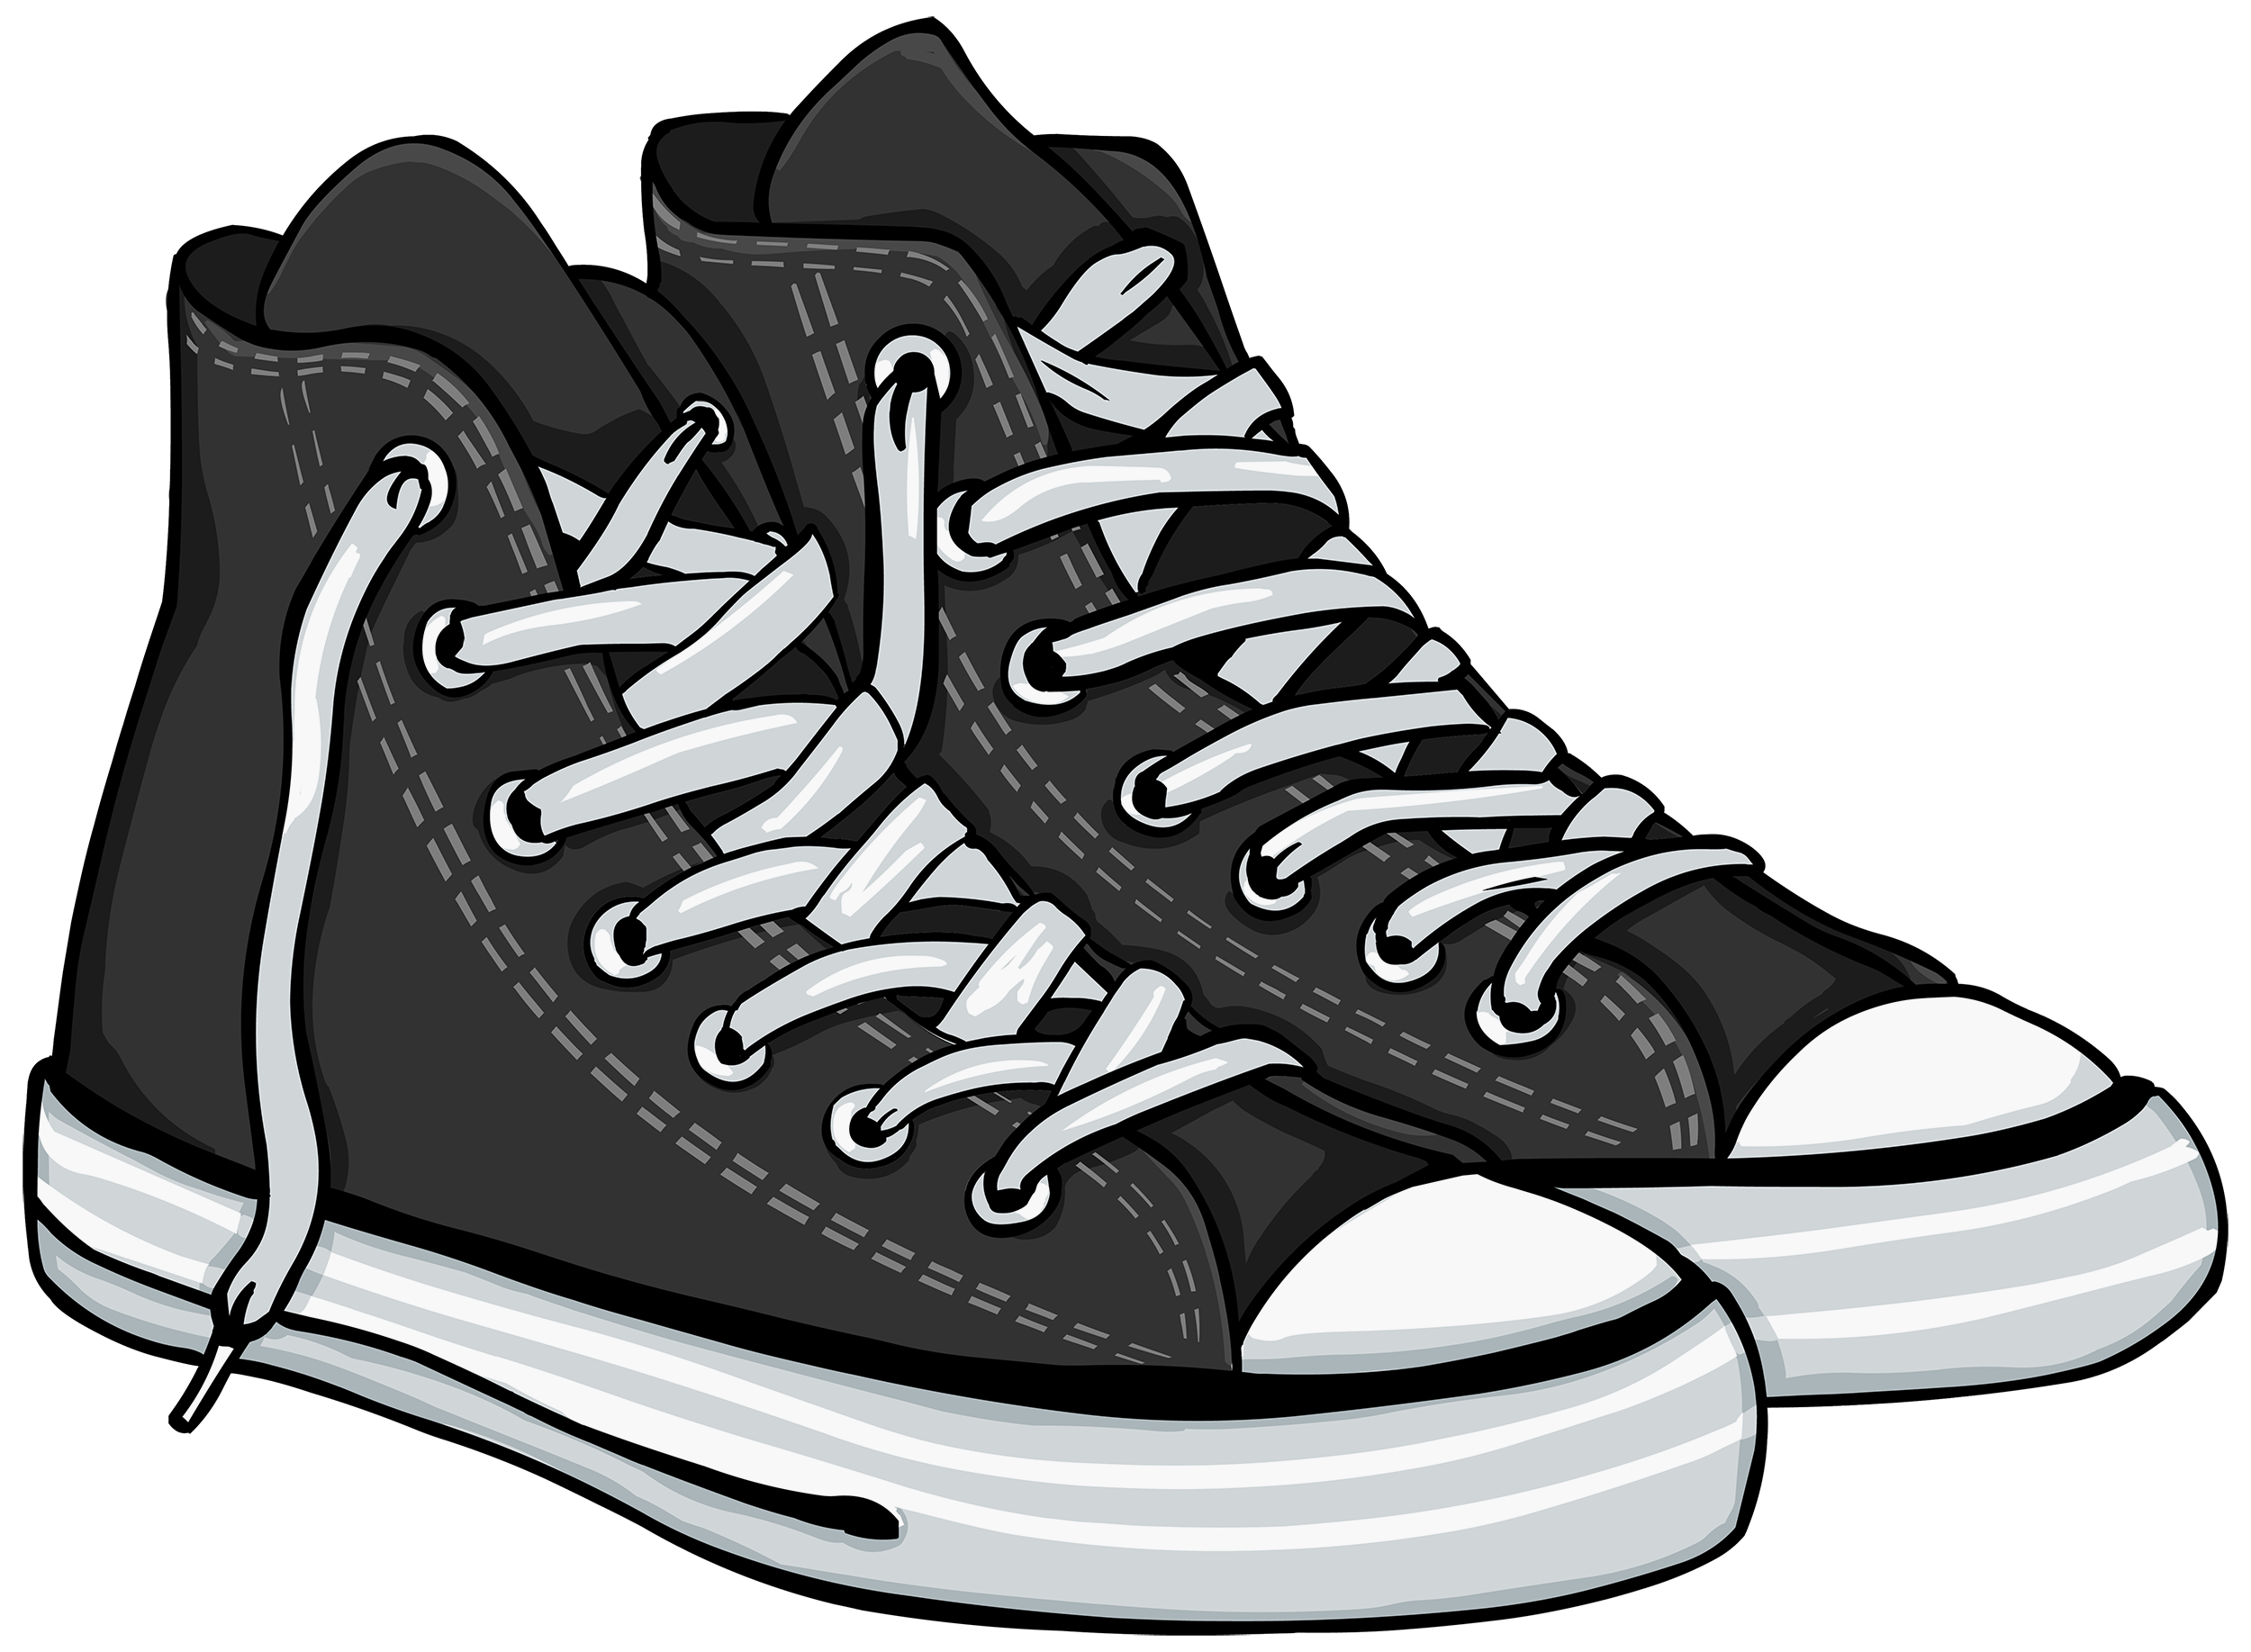 Top of shoe clipart png royalty free stock Tennis shoes clipart black and white collection | Images in 2019 ... png royalty free stock